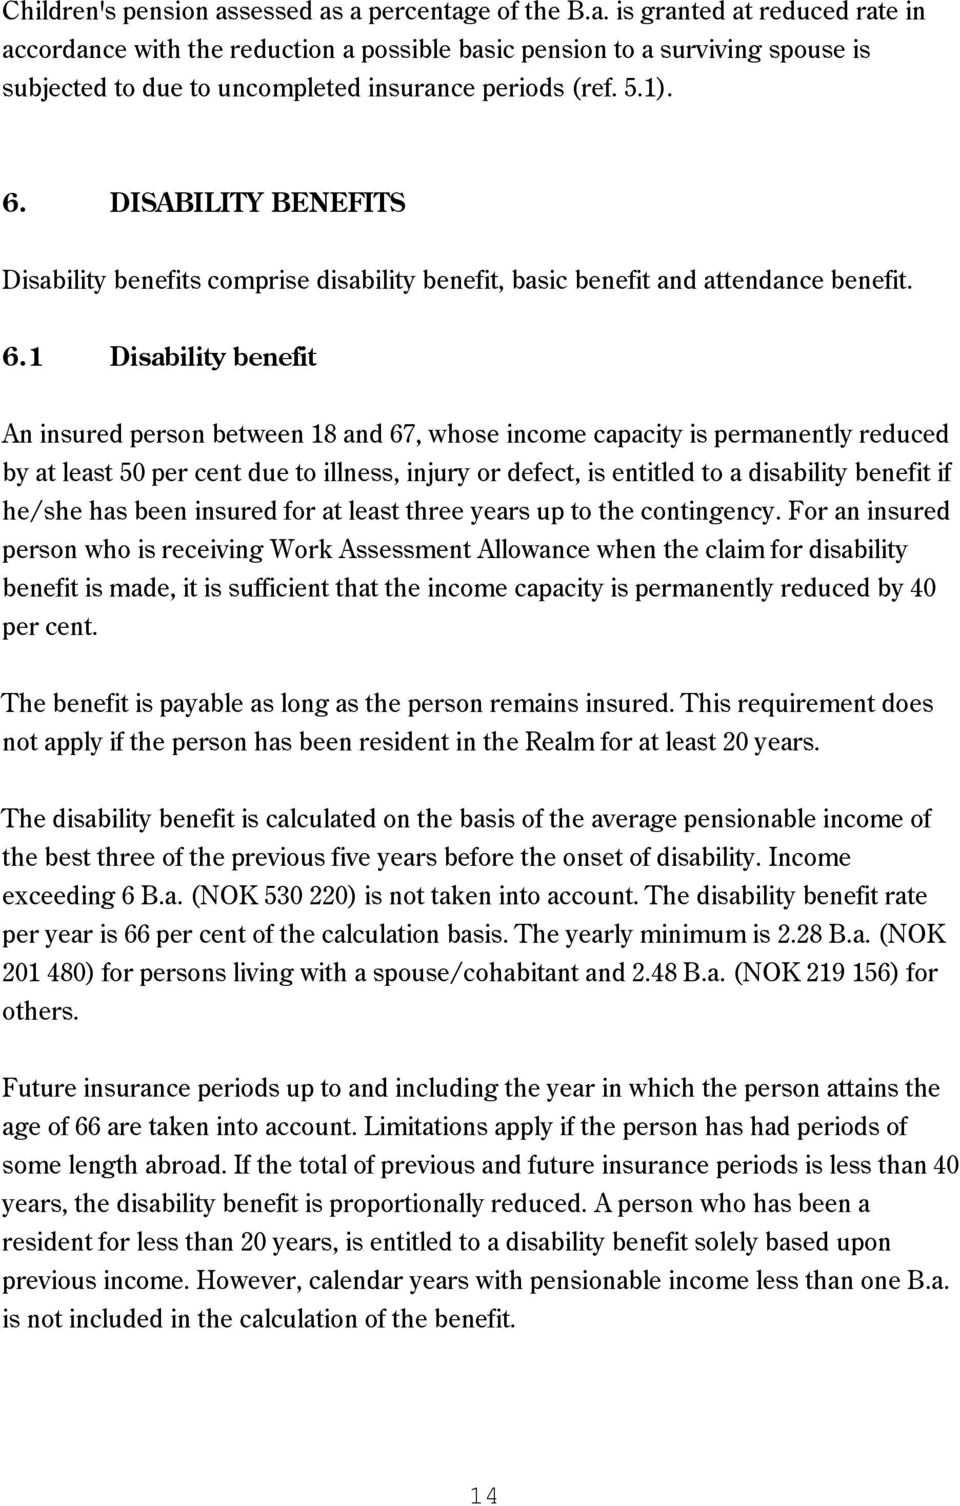 DISABILITY BENEFITS Disability benefits comprise disability benefit, basic benefit and attendance benefit. 6.